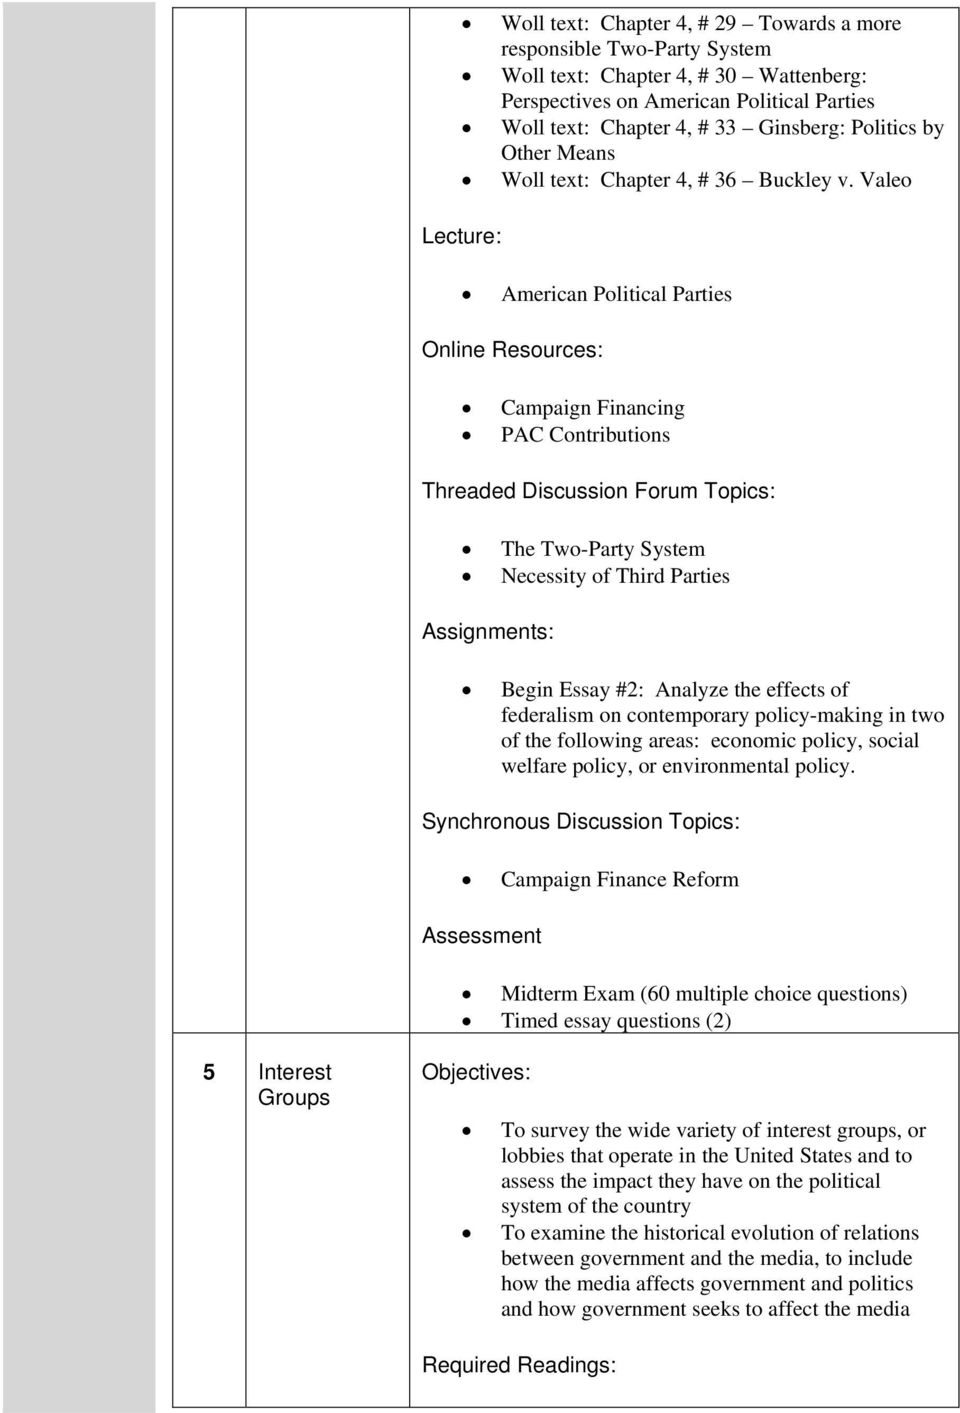 Valeo American Political Parties Online Resources: Campaign Financing PAC Contributions The Two-Party System Necessity of Third Parties Begin Essay #2: Analyze the effects of federalism on